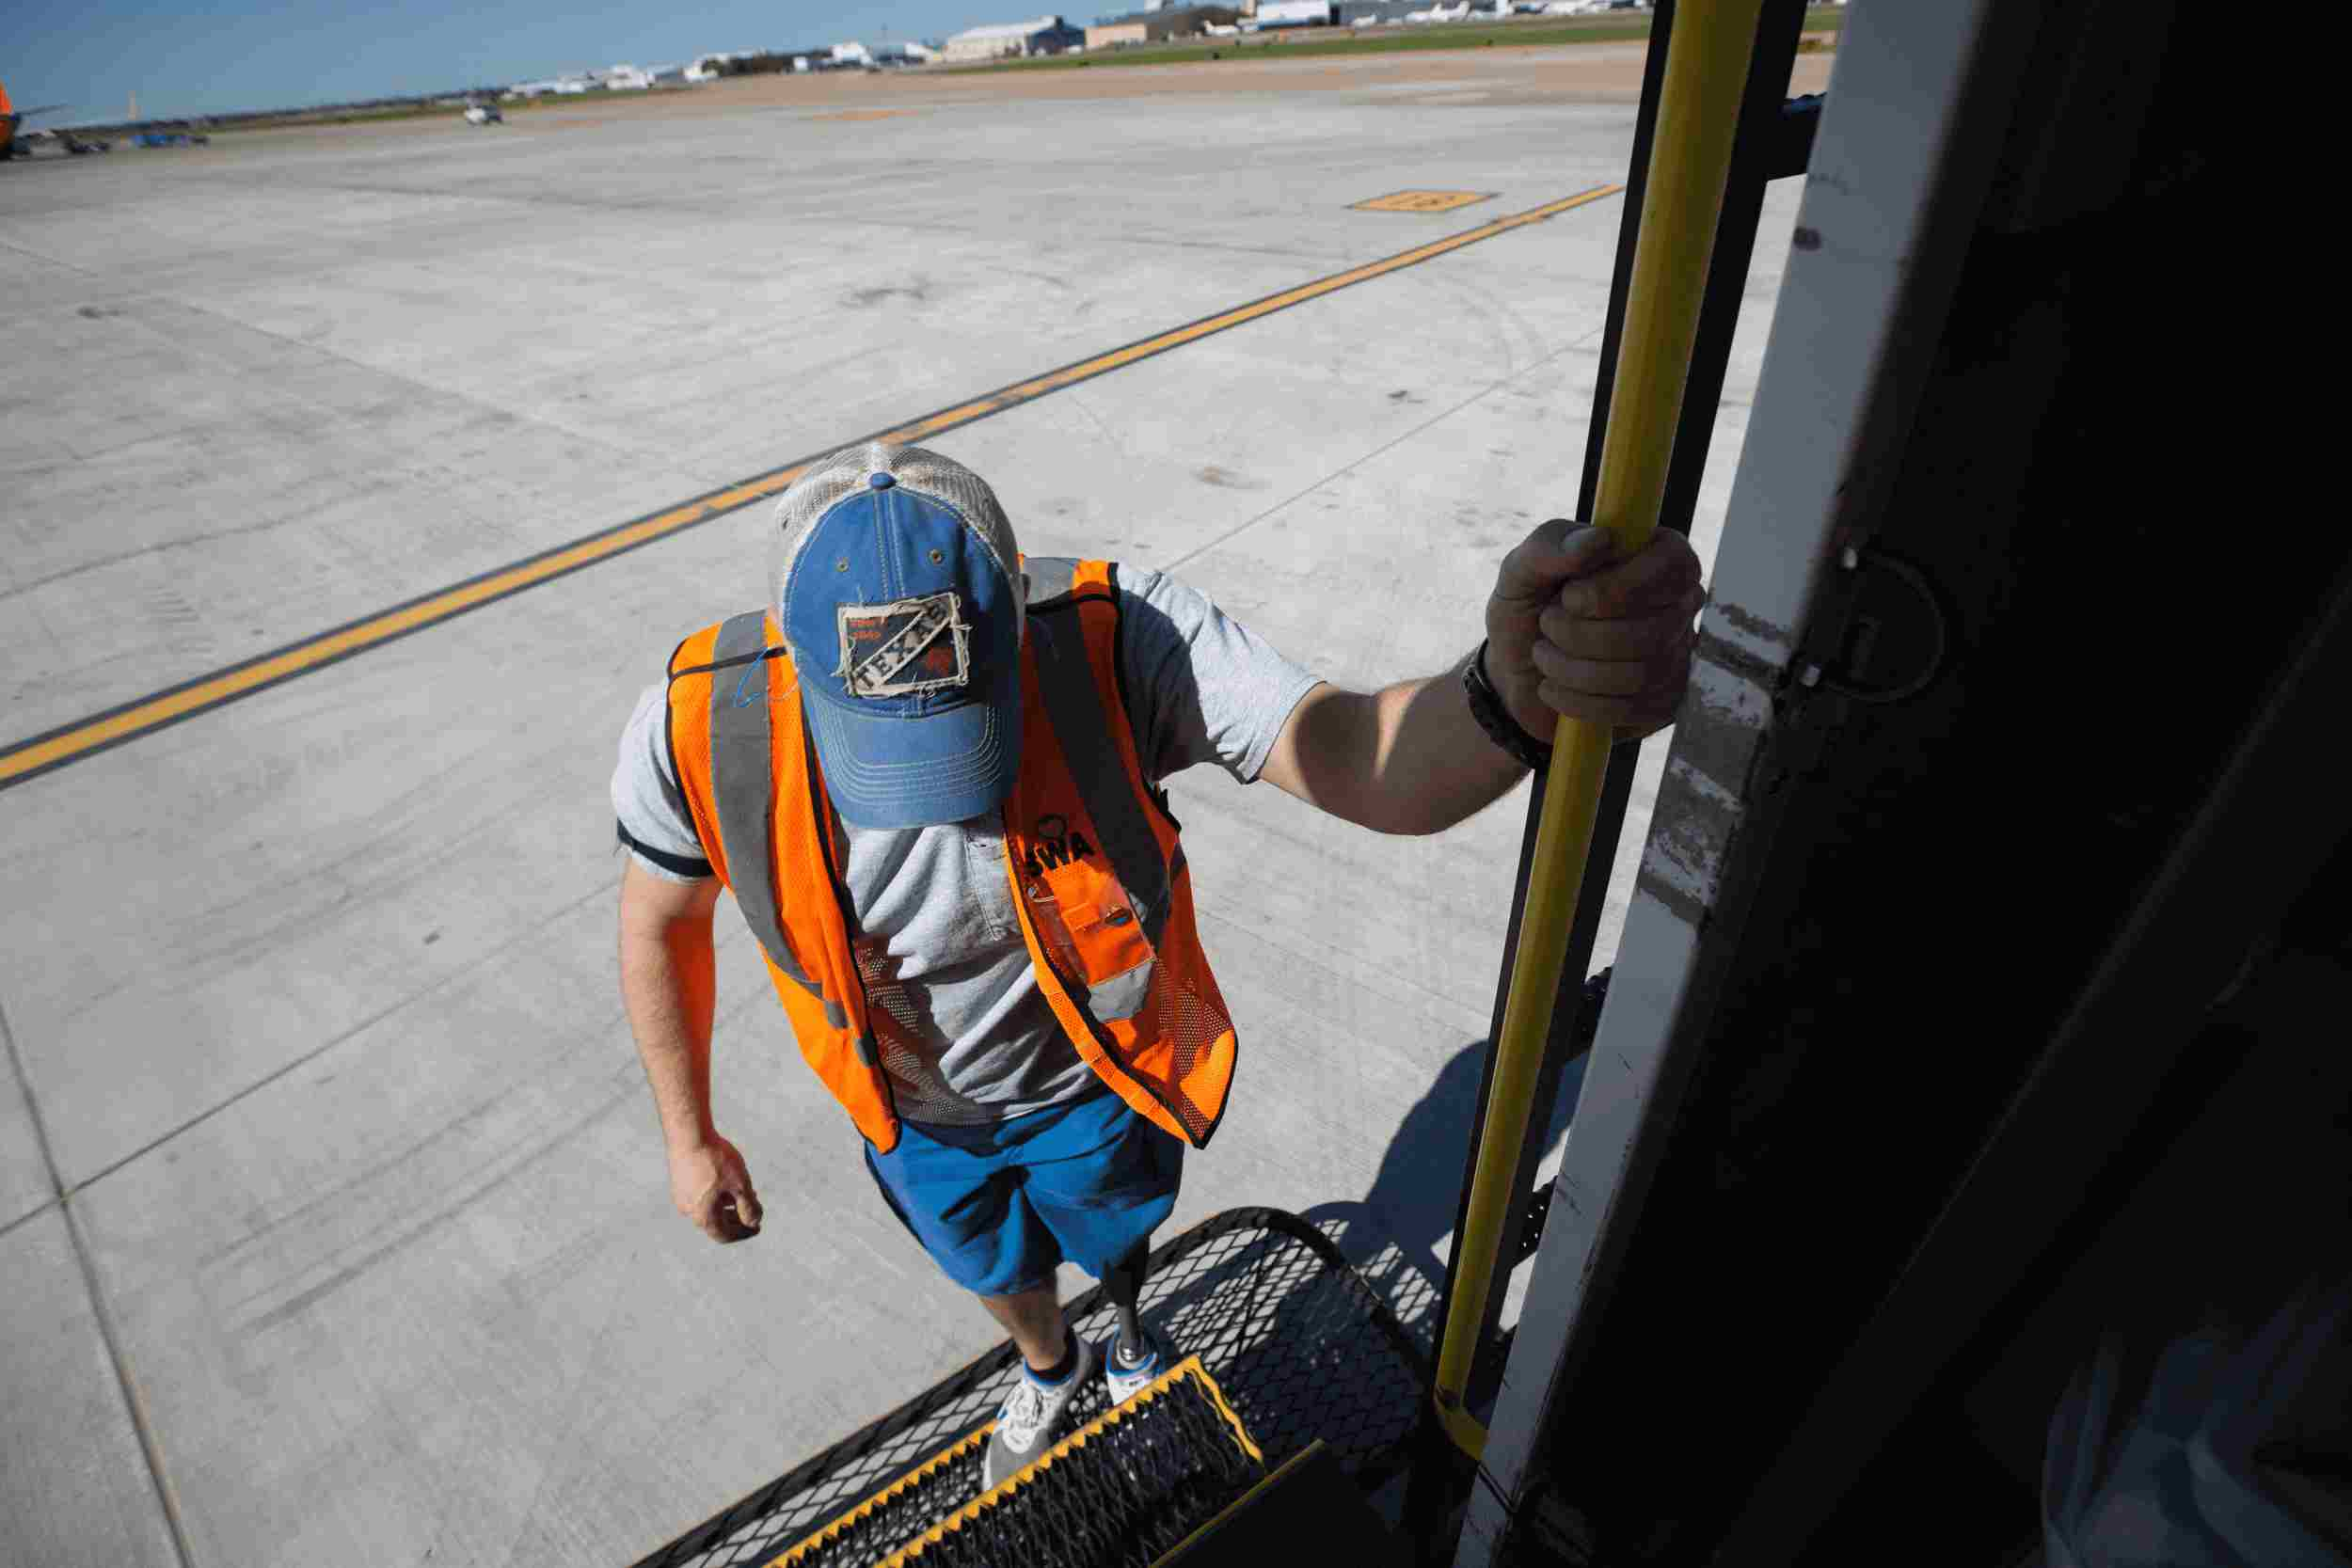 Southwest Employee with prosthetic leg working on the ramp